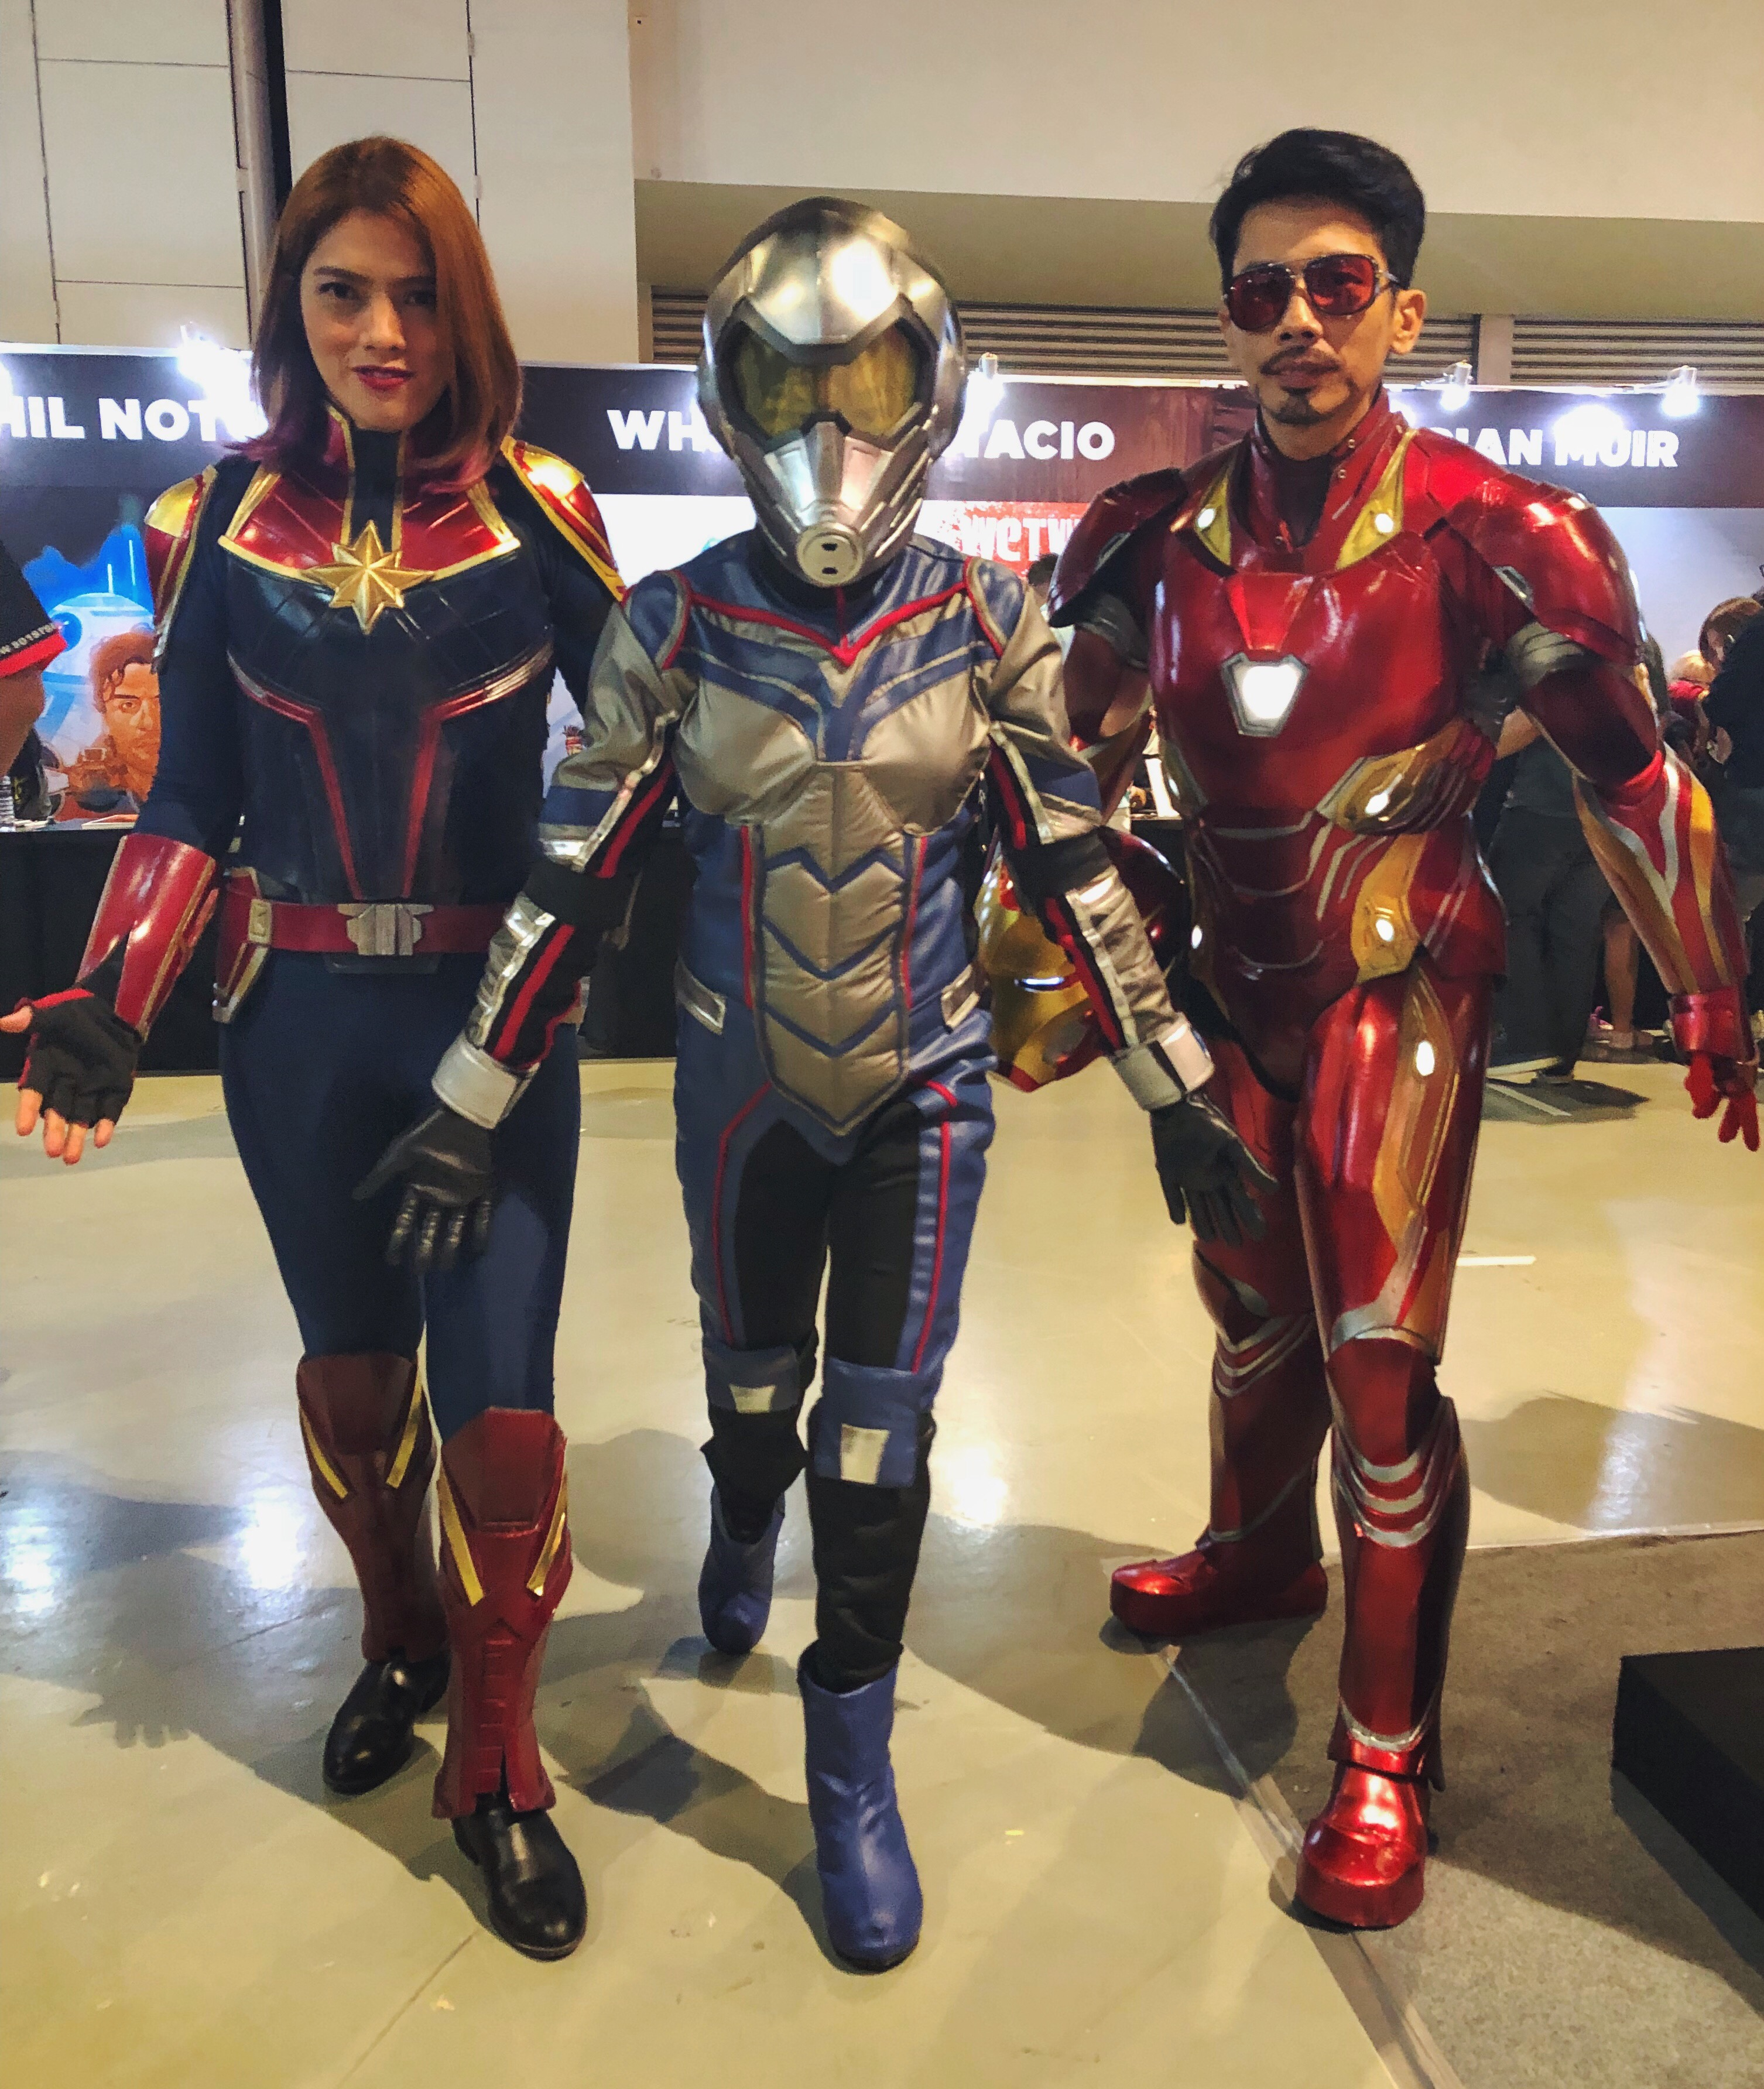 Captain Marvel, Ant-Man and Tony Stark